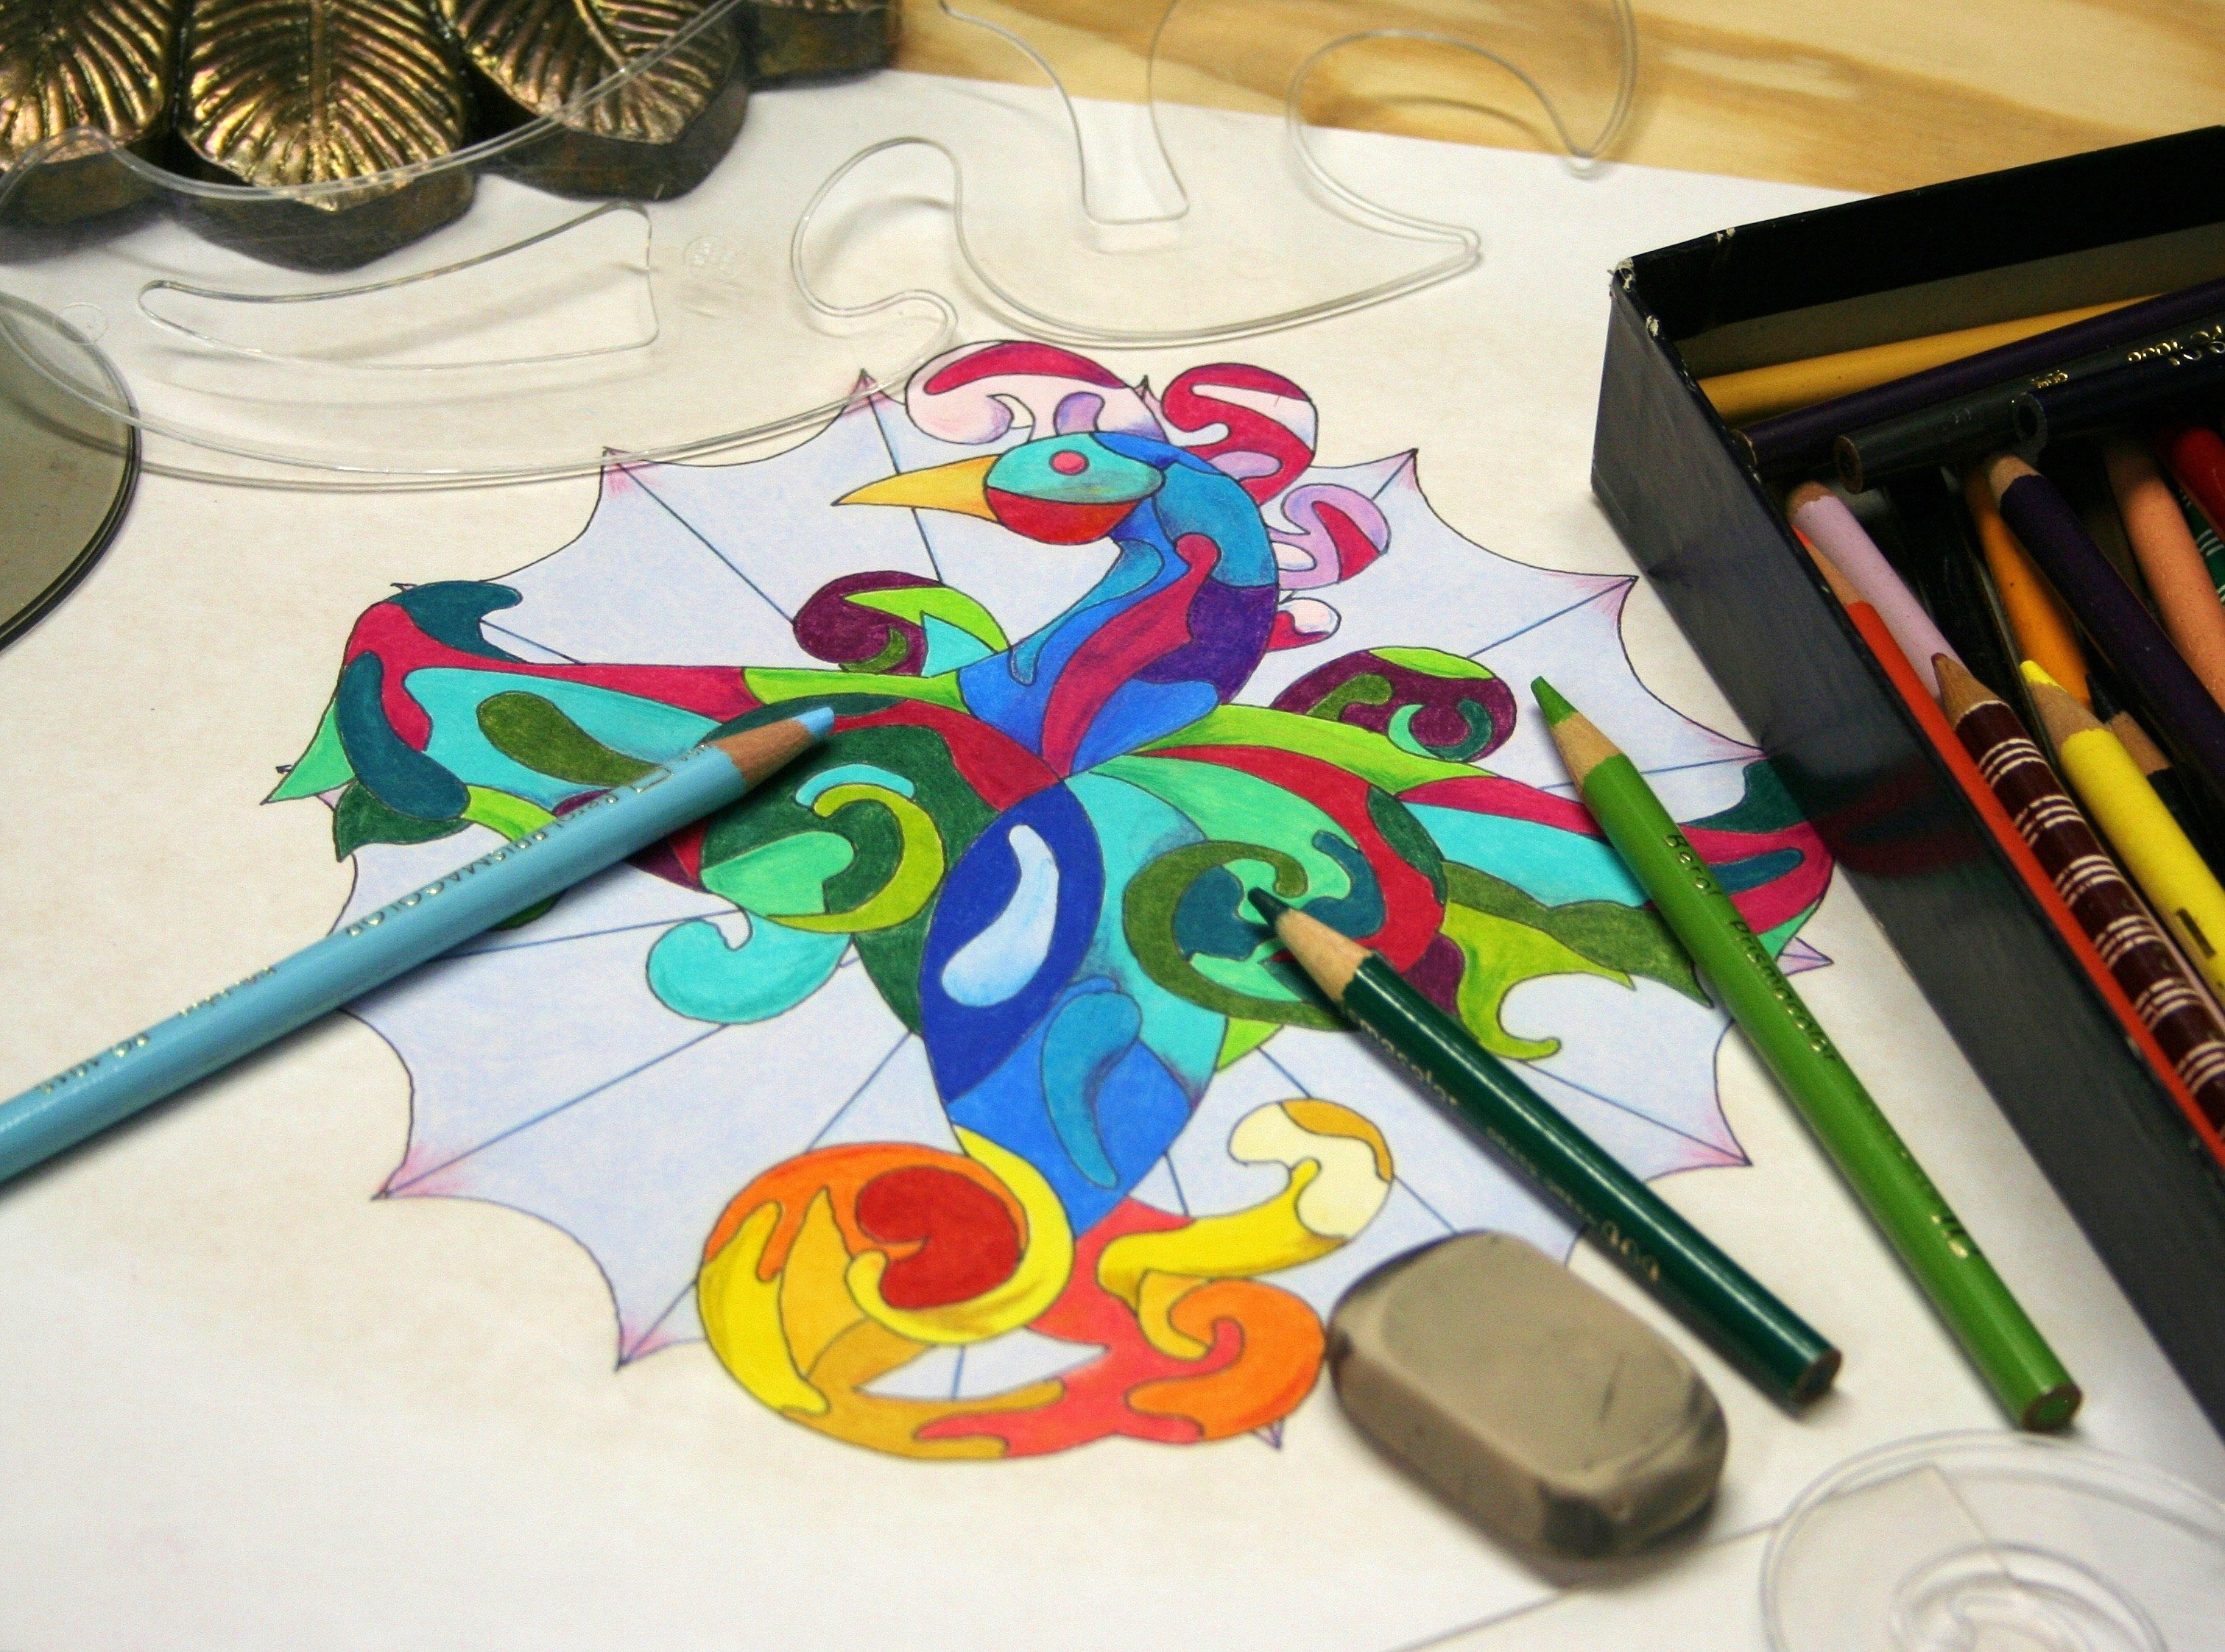 Free Stock Photo of Coloring with pencils and stencils - Public ...